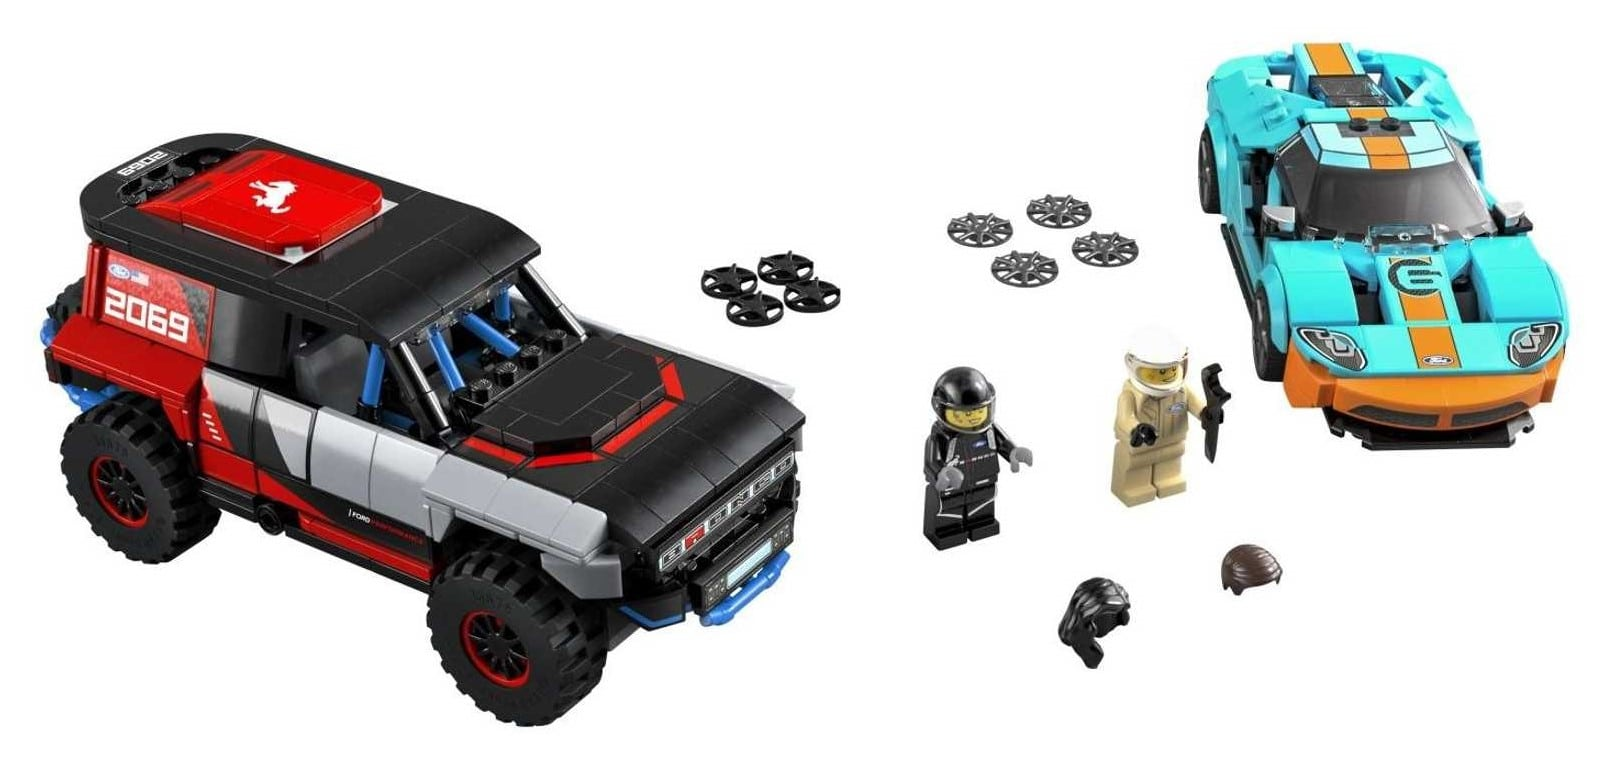 LEGO's new Speed Champions sets include Ford, Toyota, and Chevrolet 17